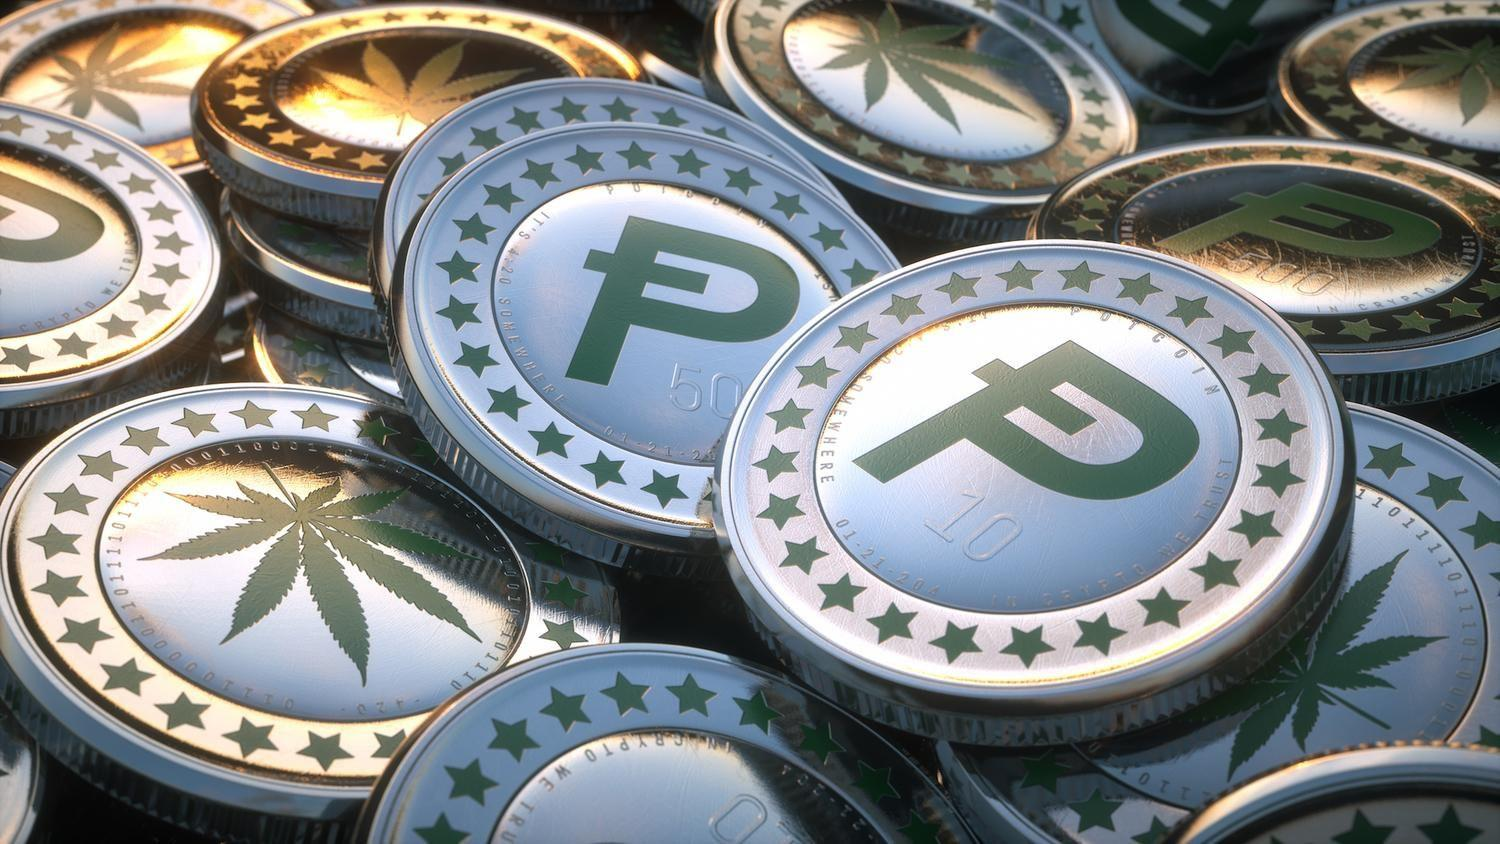 MPowering Cryptocurrency. - Cryptocurrencies are changing the rules on how underserved markets can grow. They assist in developing a more connected and accessible world for people everywhere by processing transactions with low network charges across super-secure peer-2-peer networks. This makes significant savings in costs and greatly improves scalability.So to do our part for the industry we accept PotCoin (POT) for projects related to cannabis/hemp/CBD.